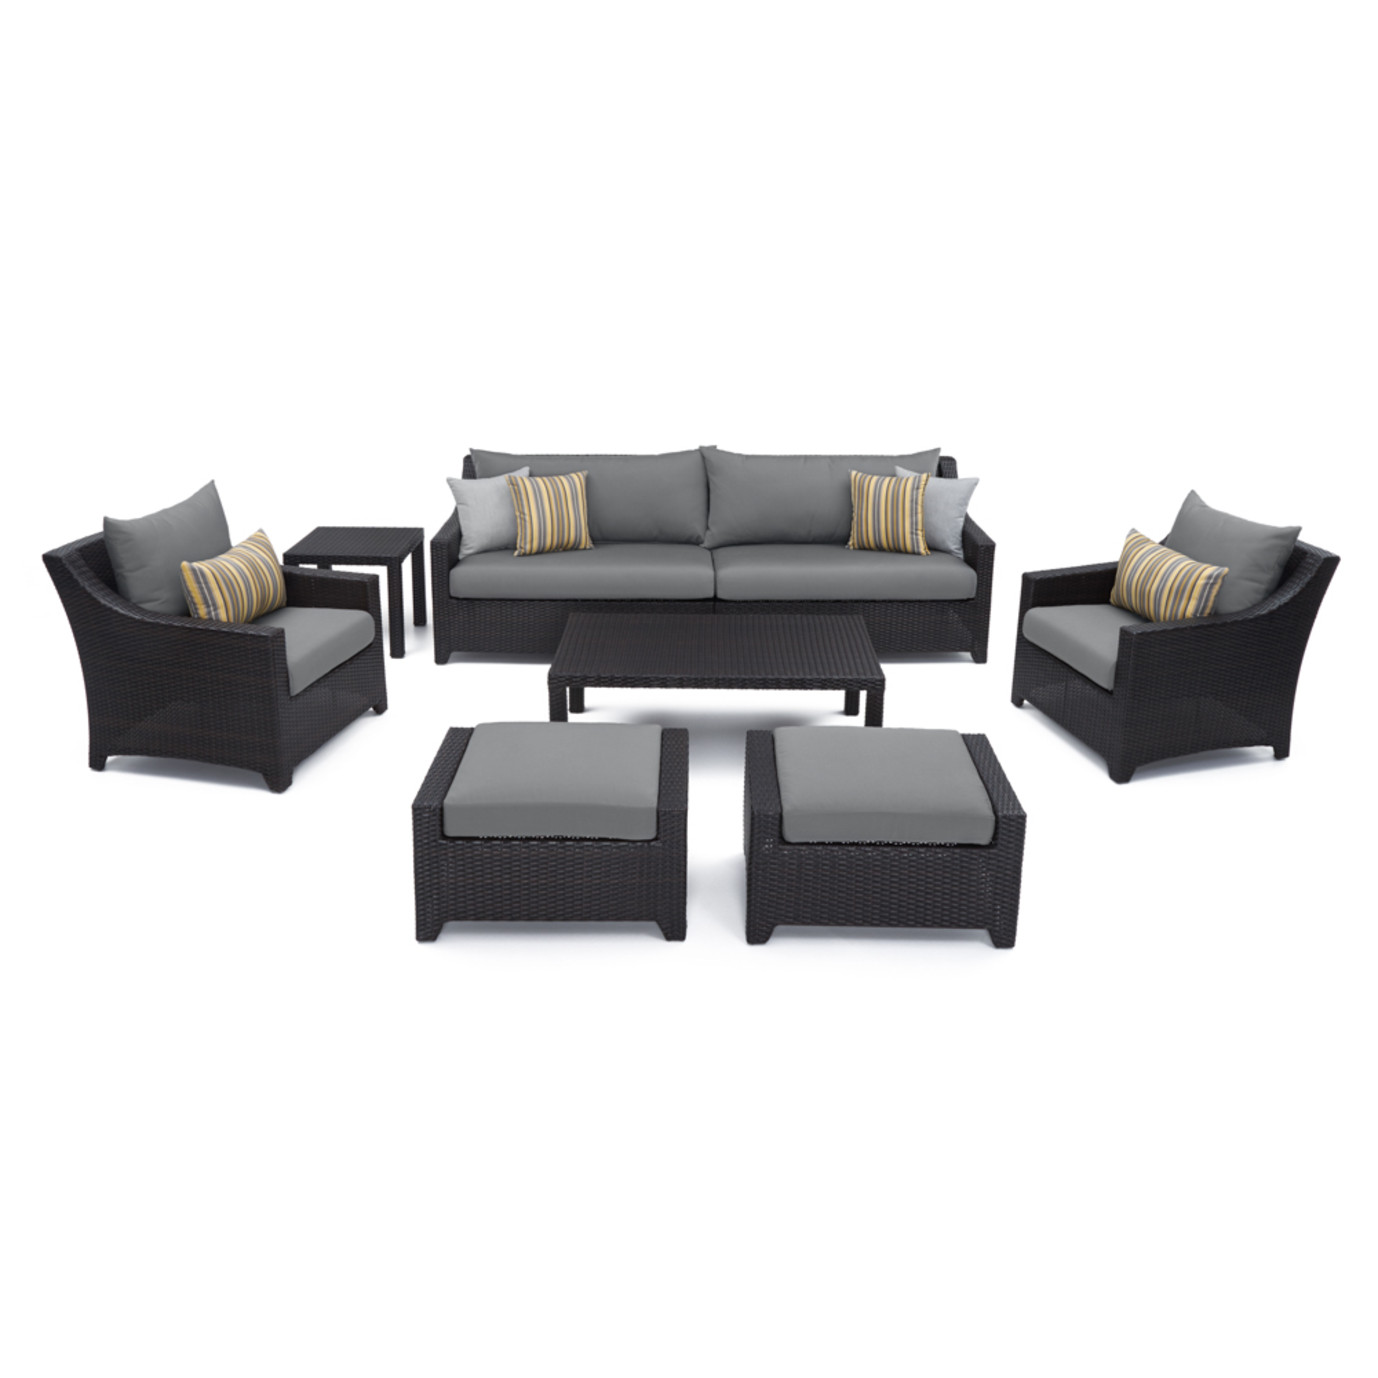 Deco™ 8pc Sofa and Club Chair Set - Charcoal Grey